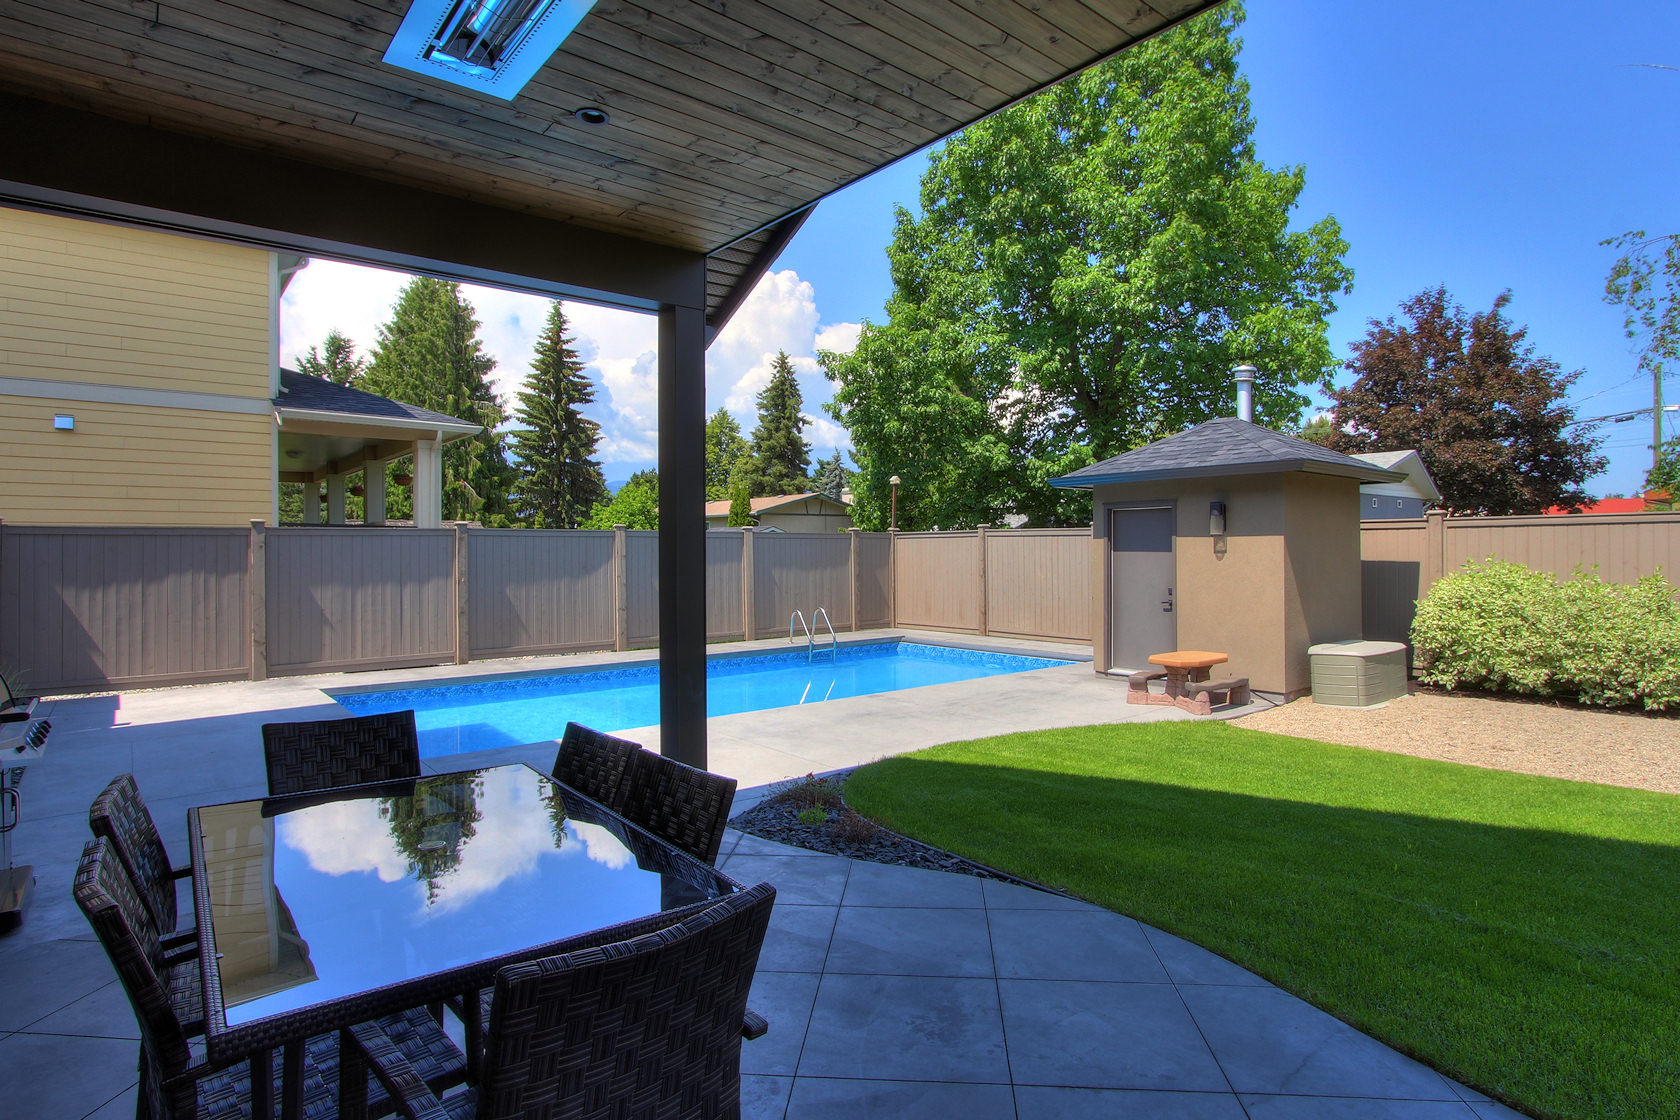 486 knowles kelowna near new home with pool for Pool design kelowna